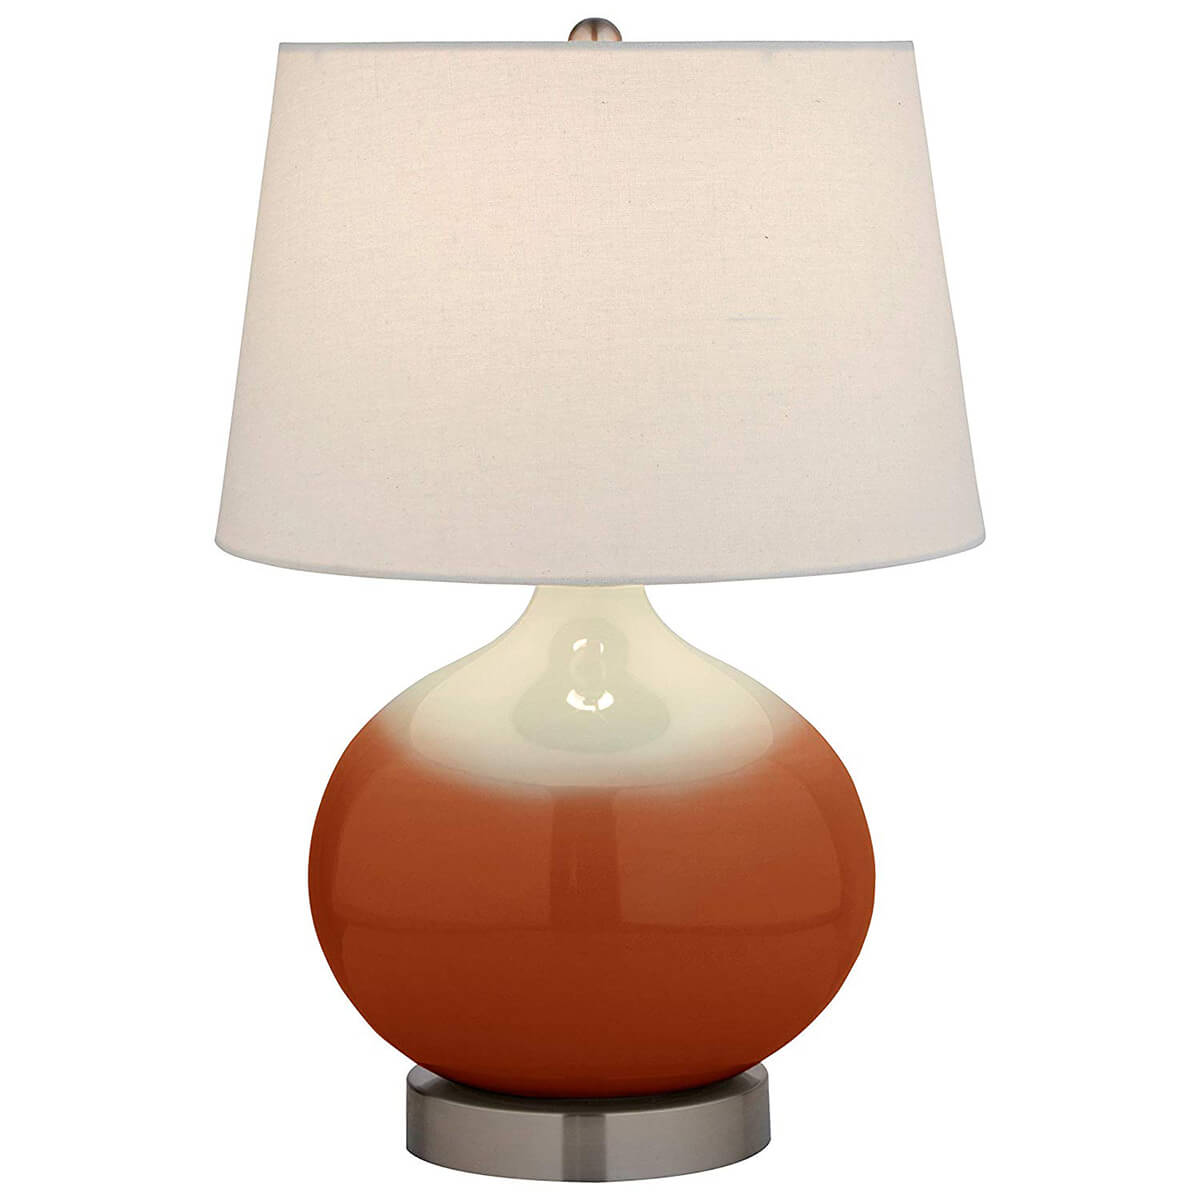 Round and Bold Ceramic Table Lamp